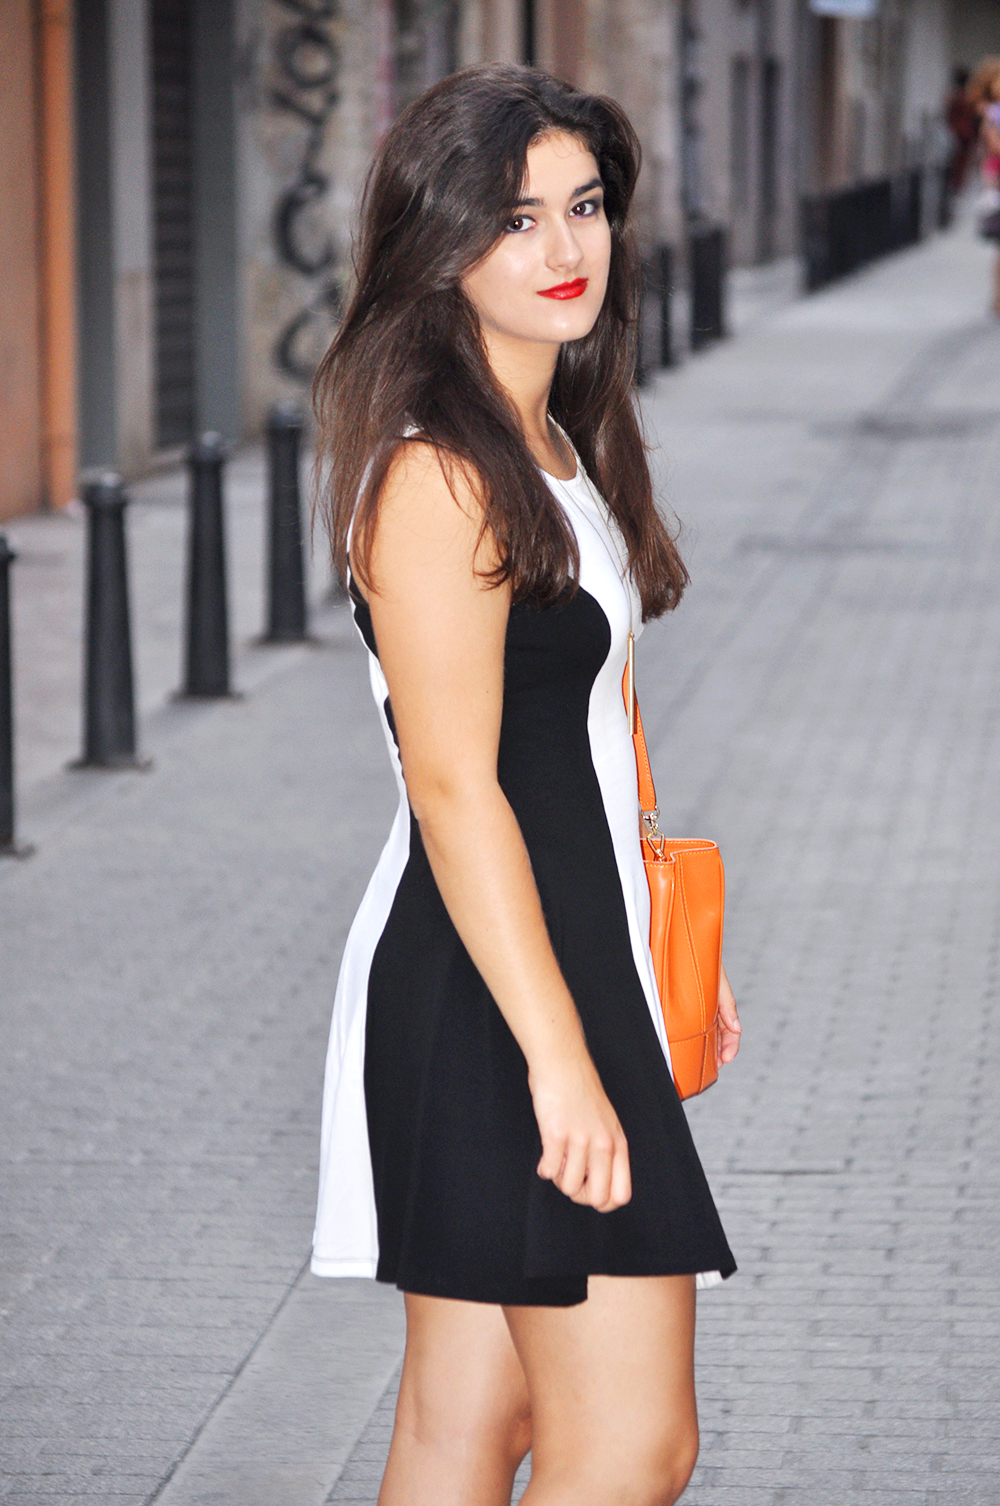 zara max mara rondine tote bag orange amanda r. something fashion blogger spain valencia, outfit summer skater dress look style chic bohemismo whistle jewelry pop color